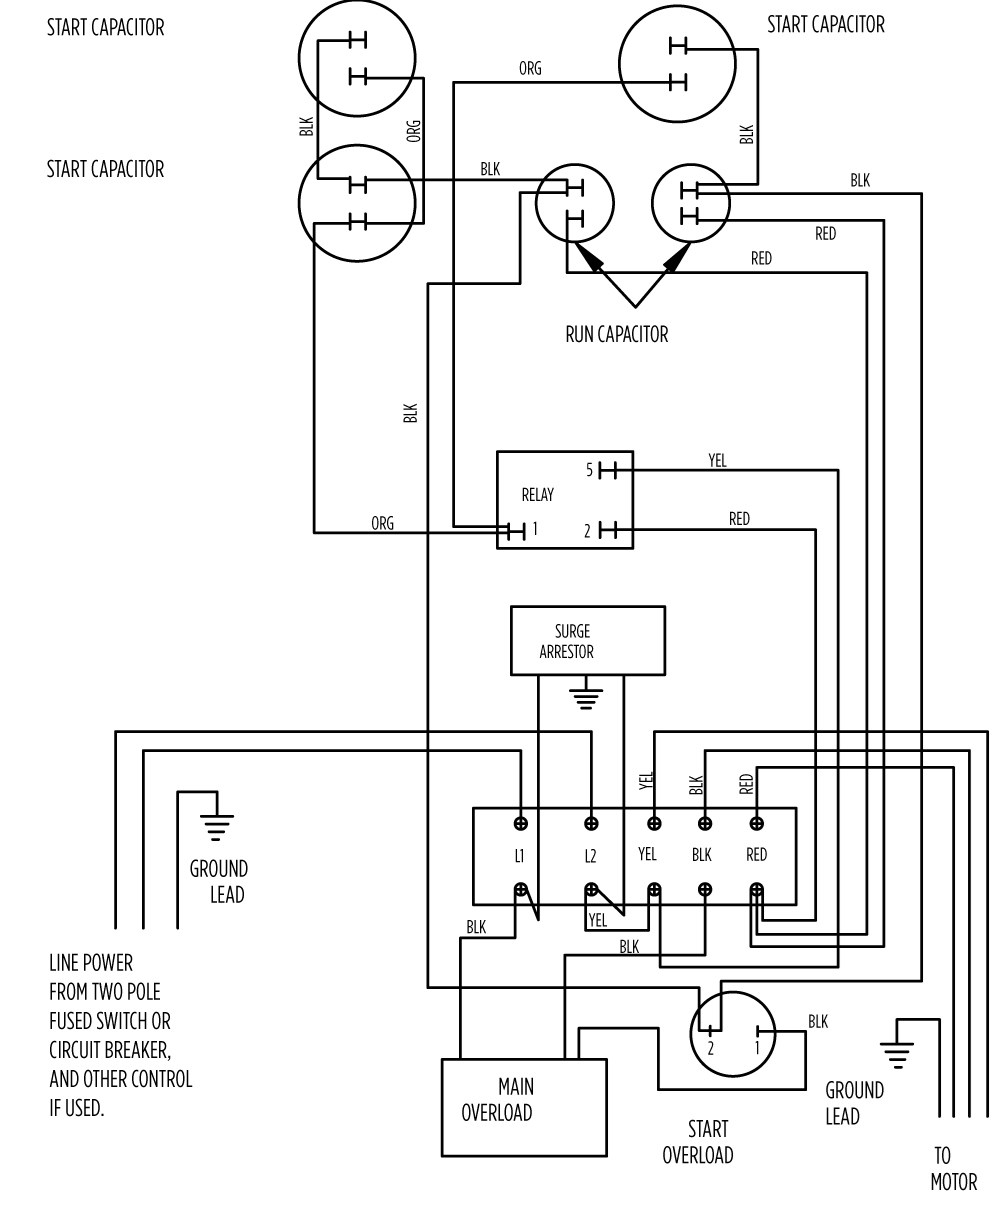 water well electrical diagram circuit diagram symbols \u2022 deep water well pump systems aim manual page 57 single phase motors and controls motor rh franklinwater com submersible well pump wiring diagram 220v well pump wiring diagram